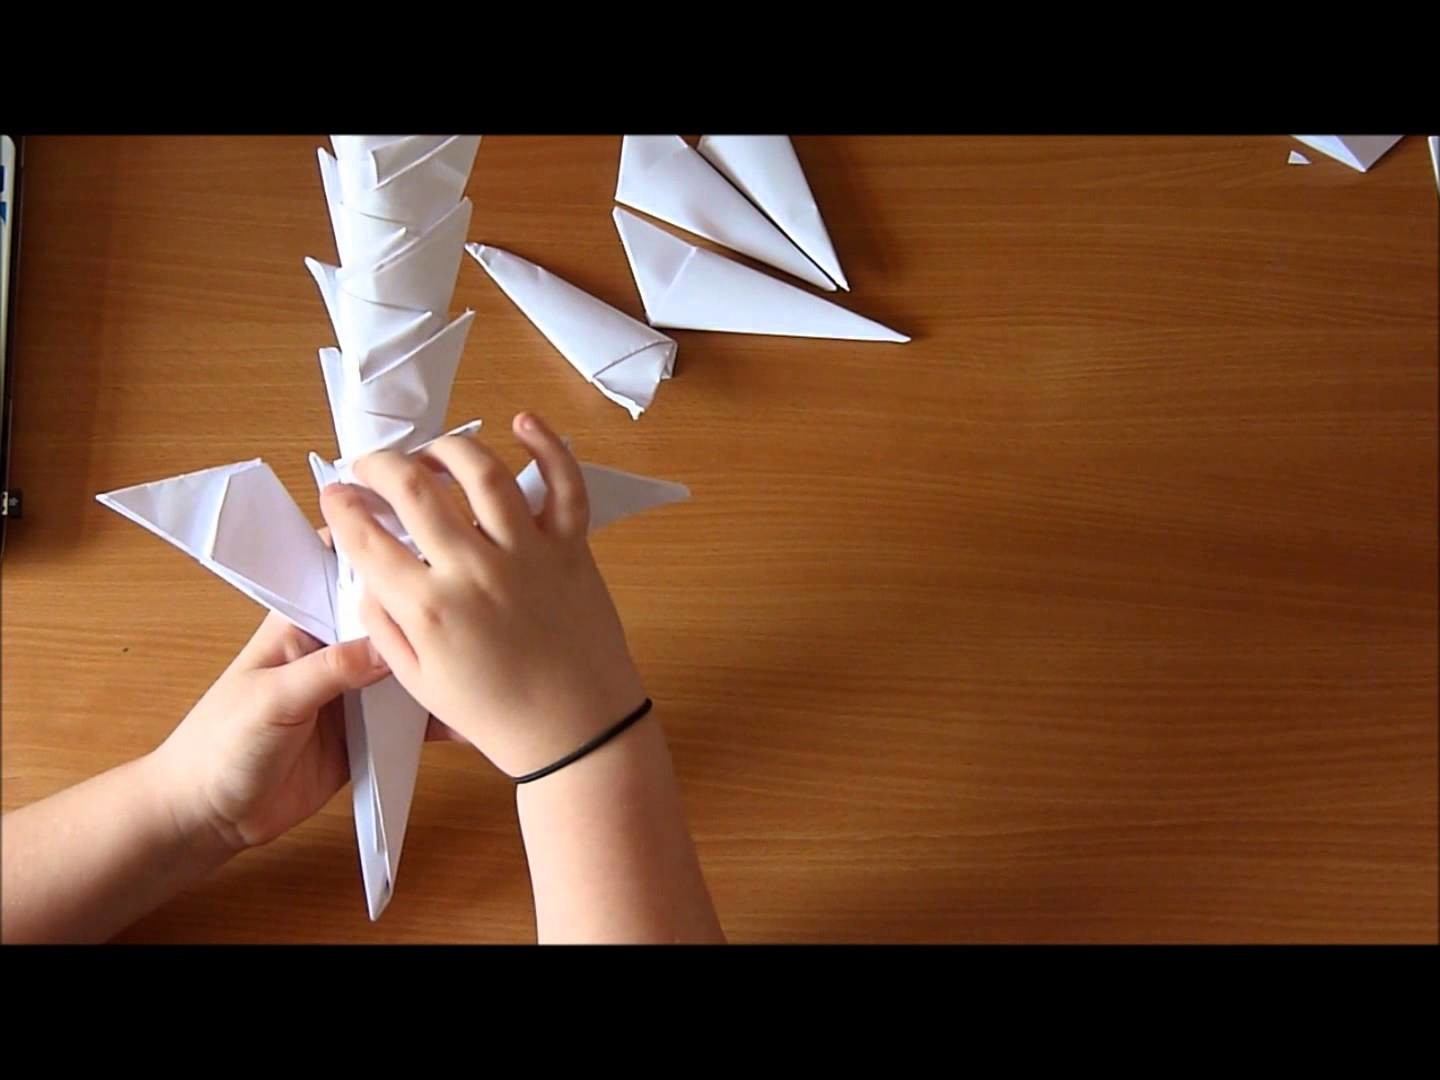 How to make a paper sword with no glue.tape (version 2)